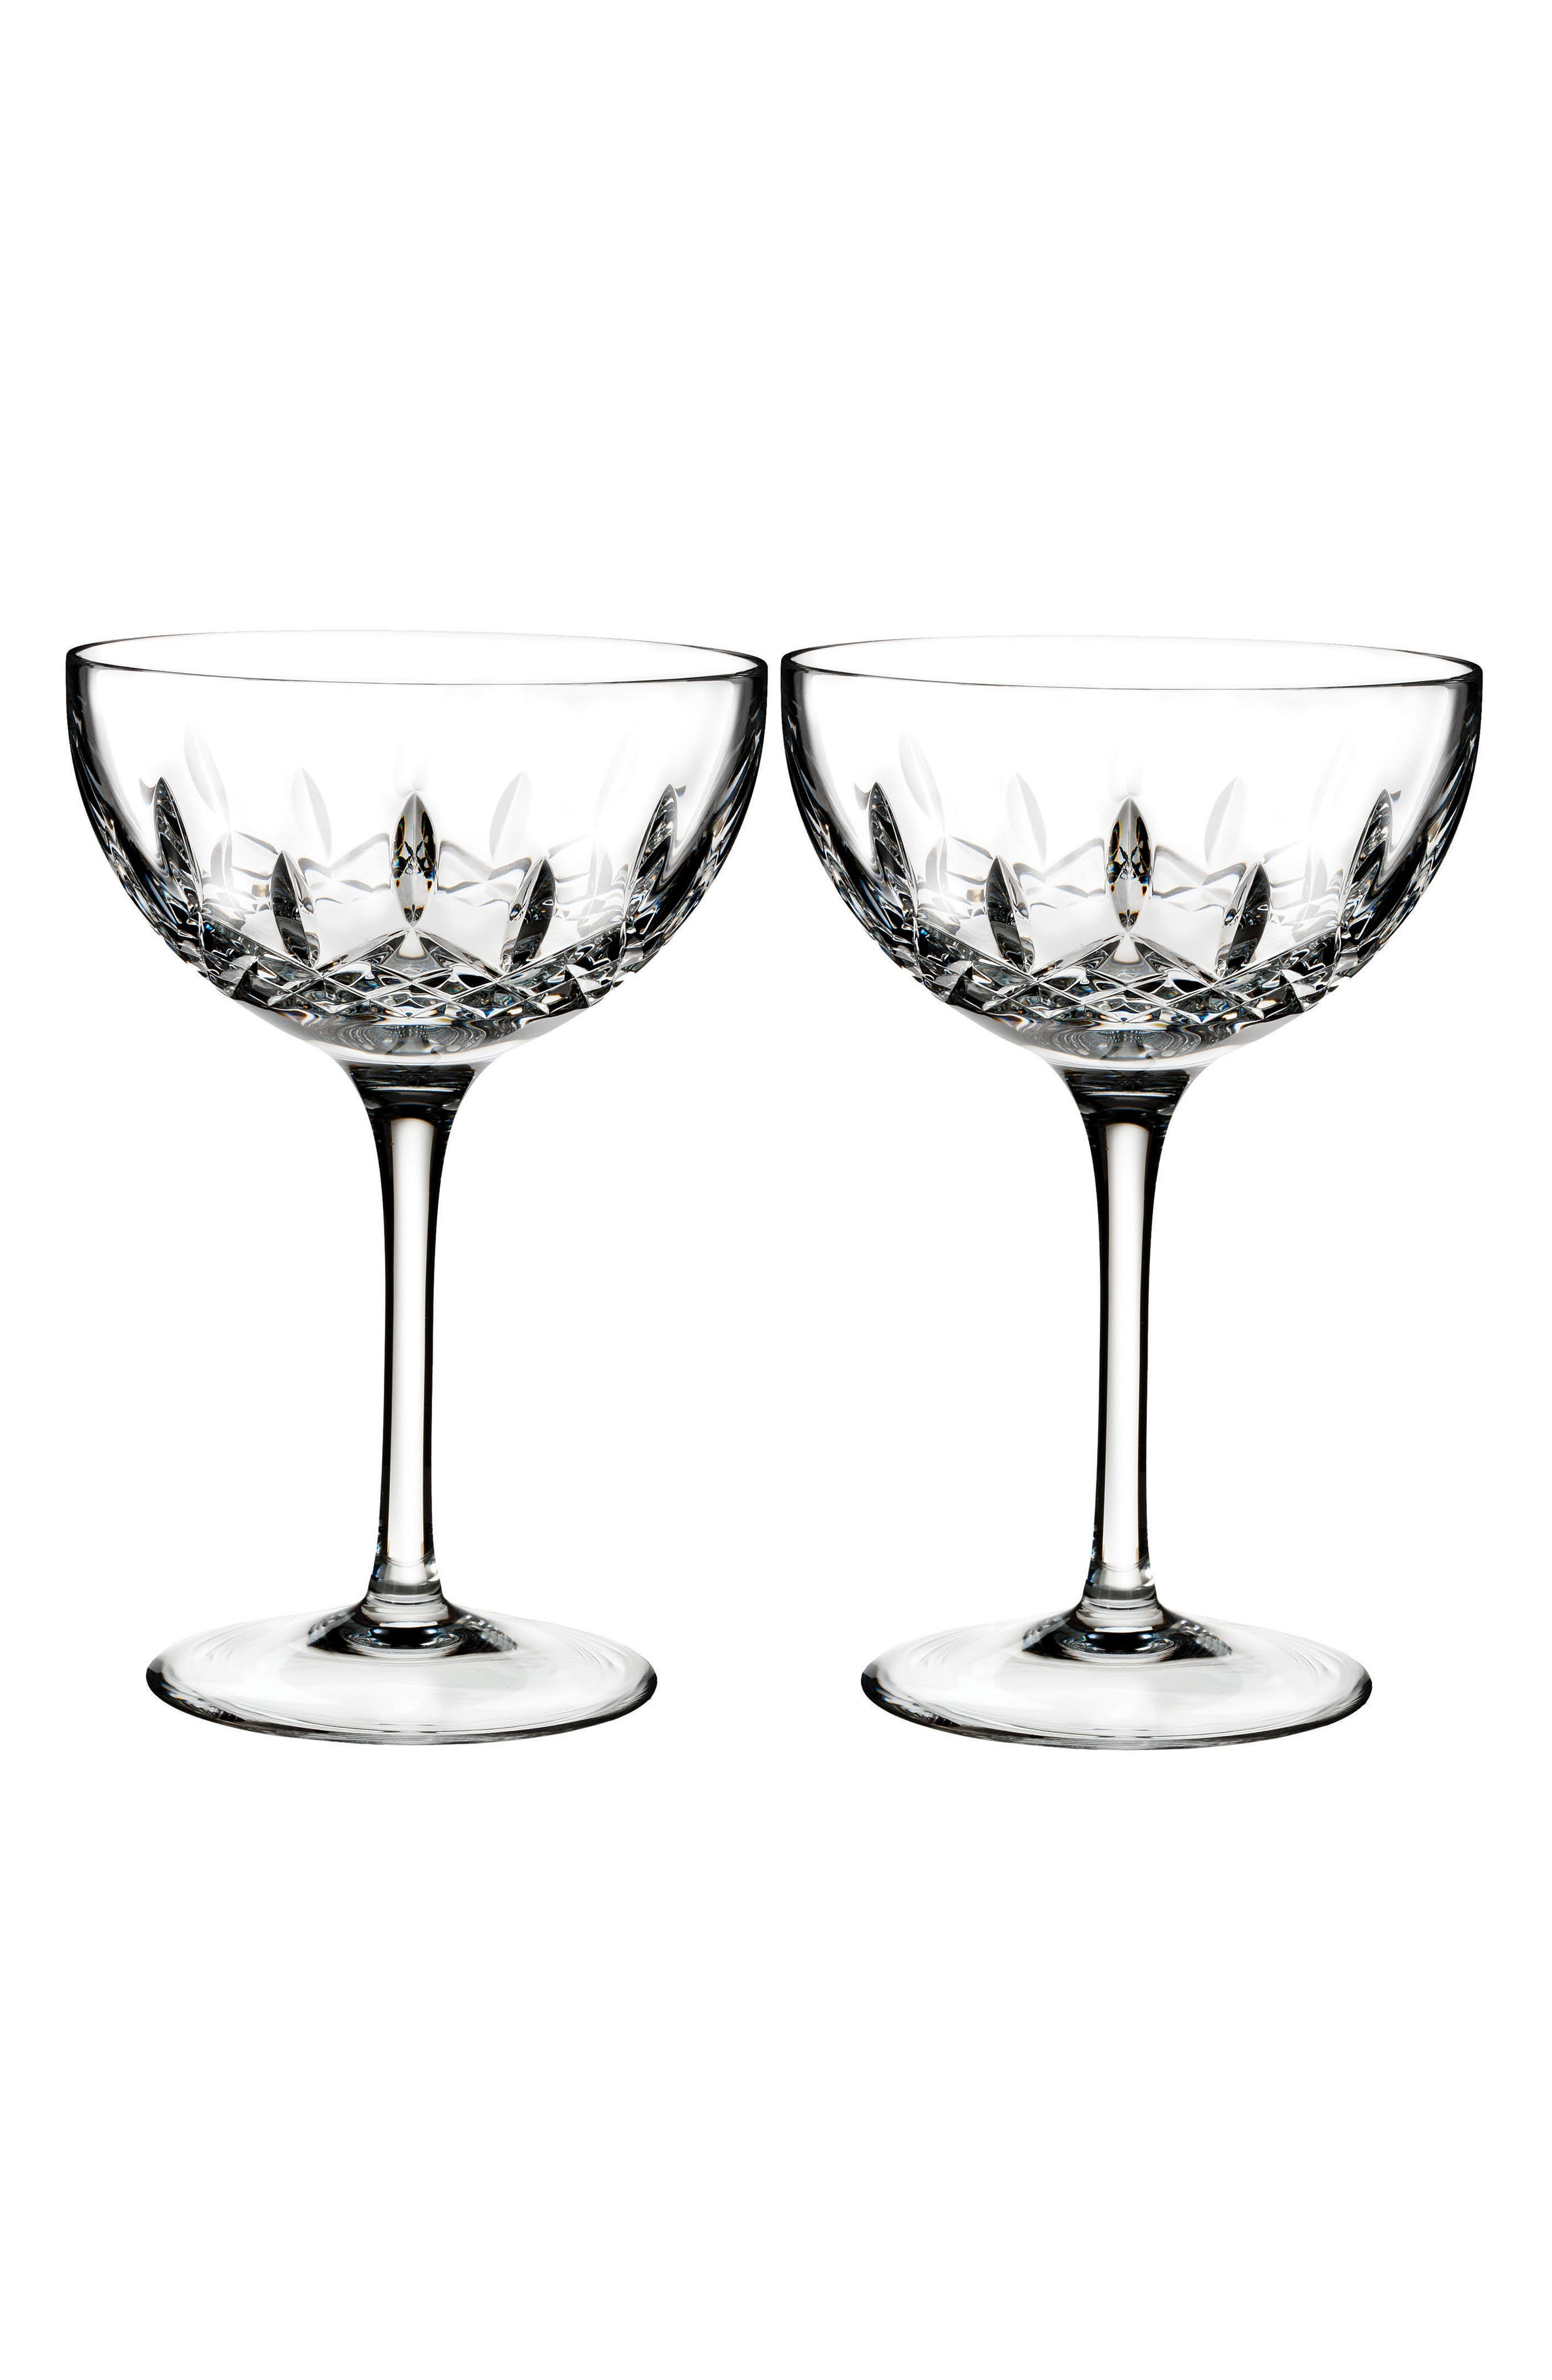 Lismore Pops Set of 2 Lead Crystal Cocktail Glasses,                             Main thumbnail 1, color,                             CRYSTAL